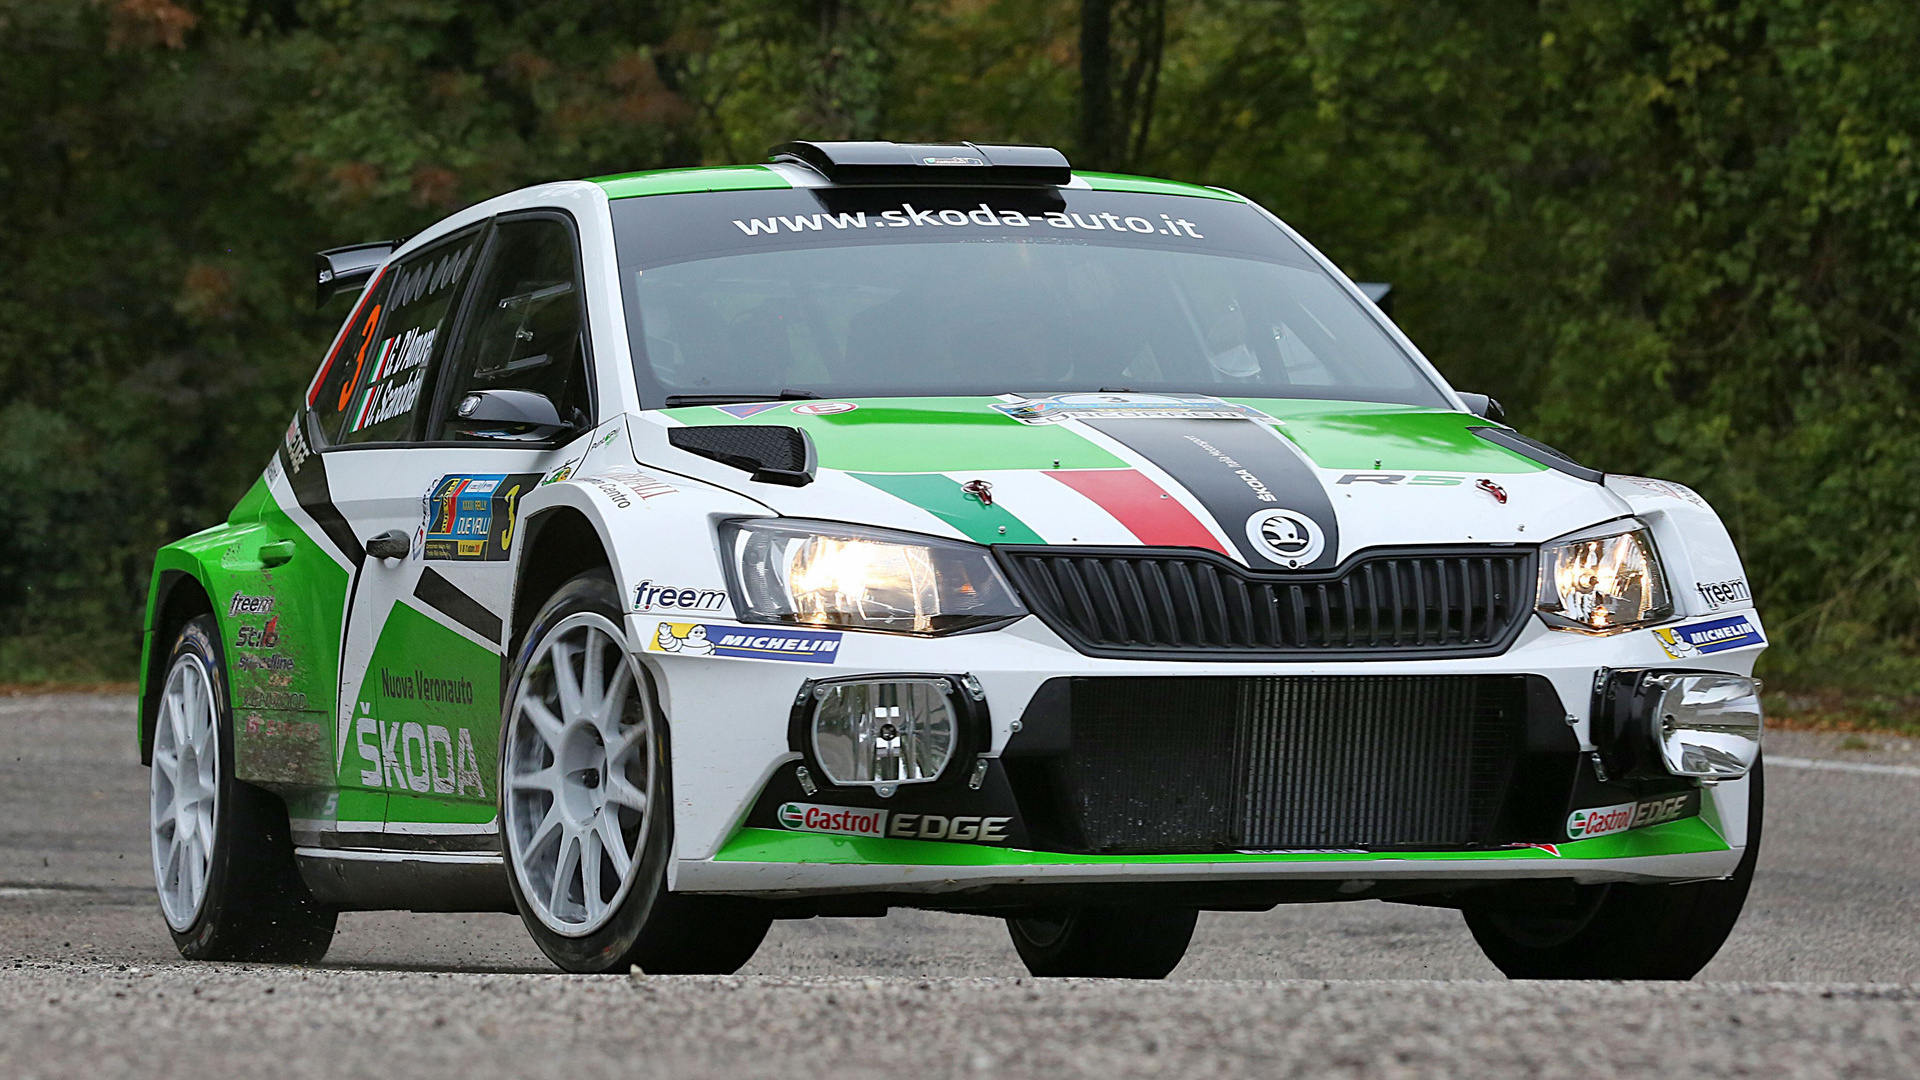 2015 Skoda Fabia R5 - Wallpapers and HD Images | Car Pixel